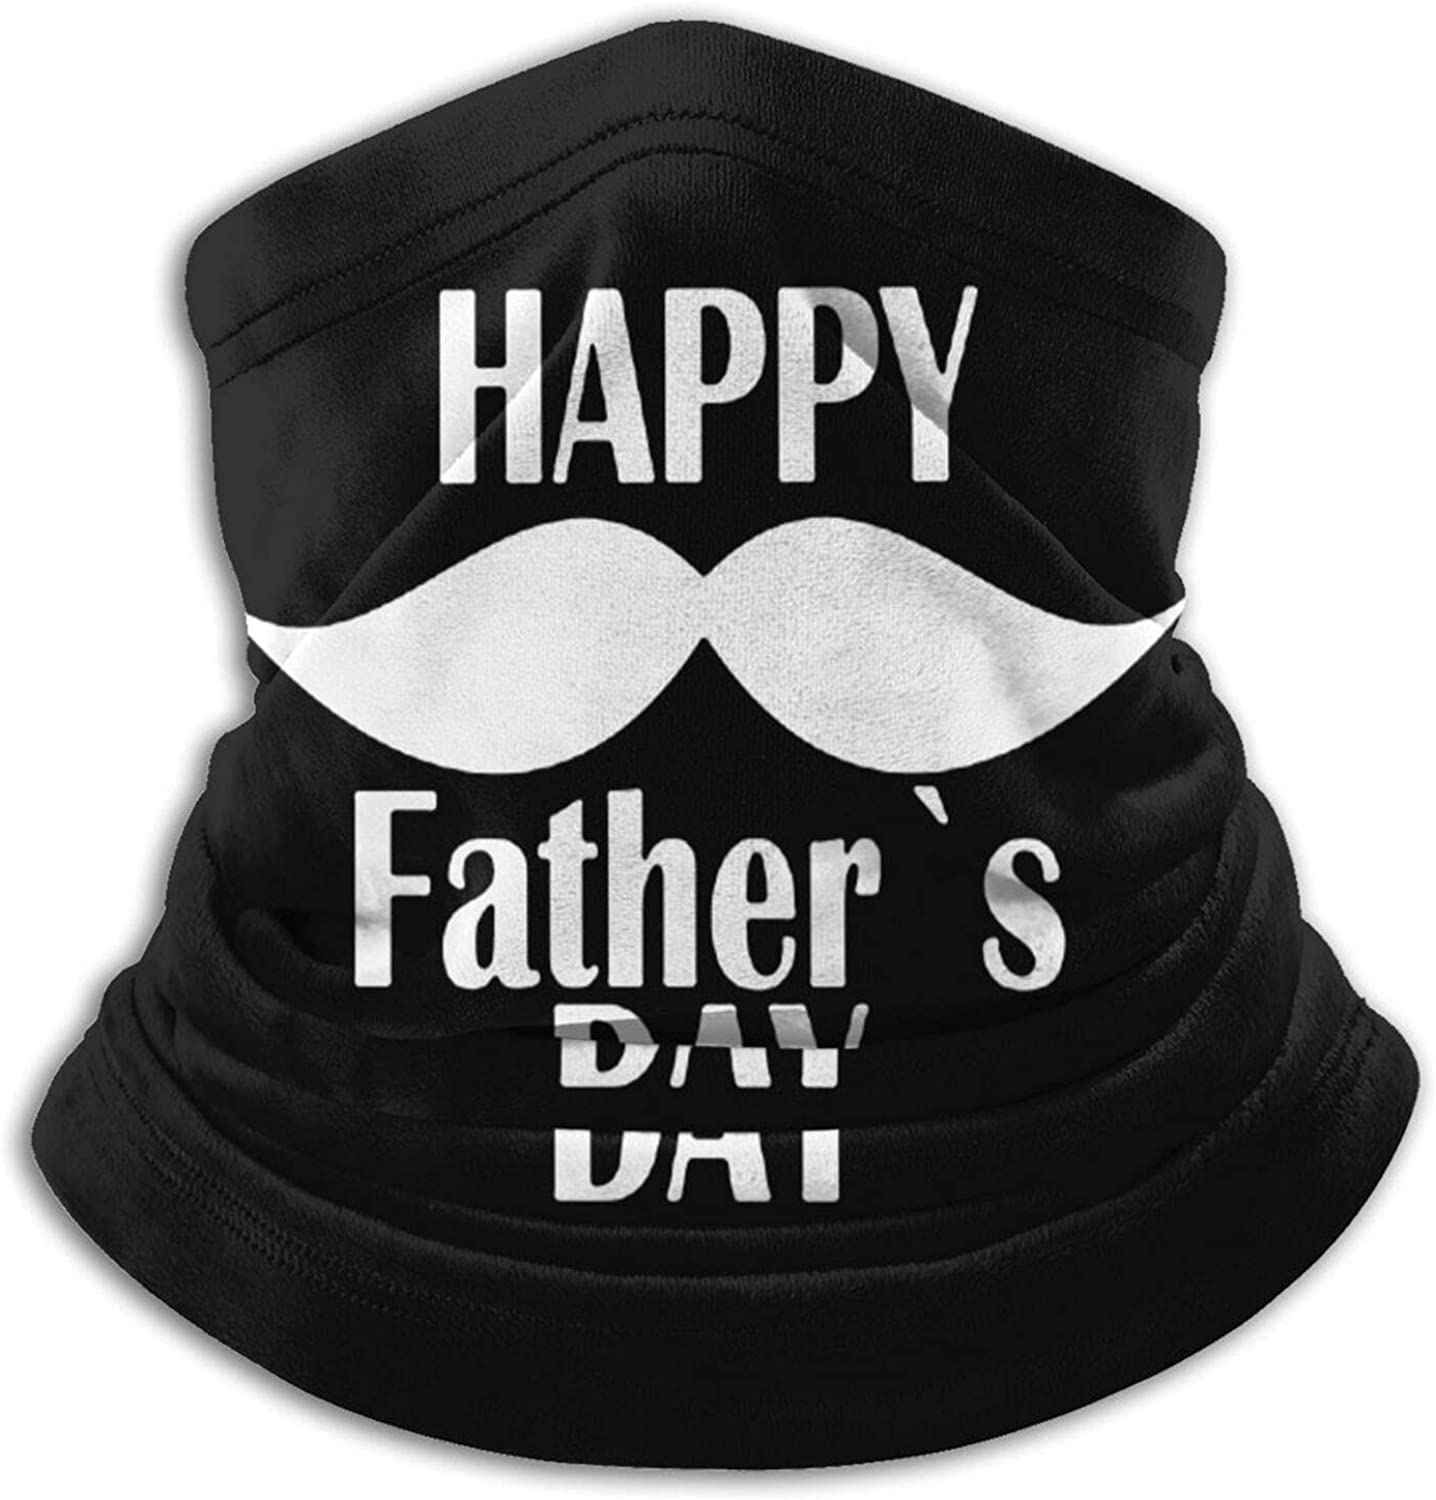 Happy father's dad day unisex winter neck gaiter face cover mask, windproof balaclava scarf for fishing, running & hiking